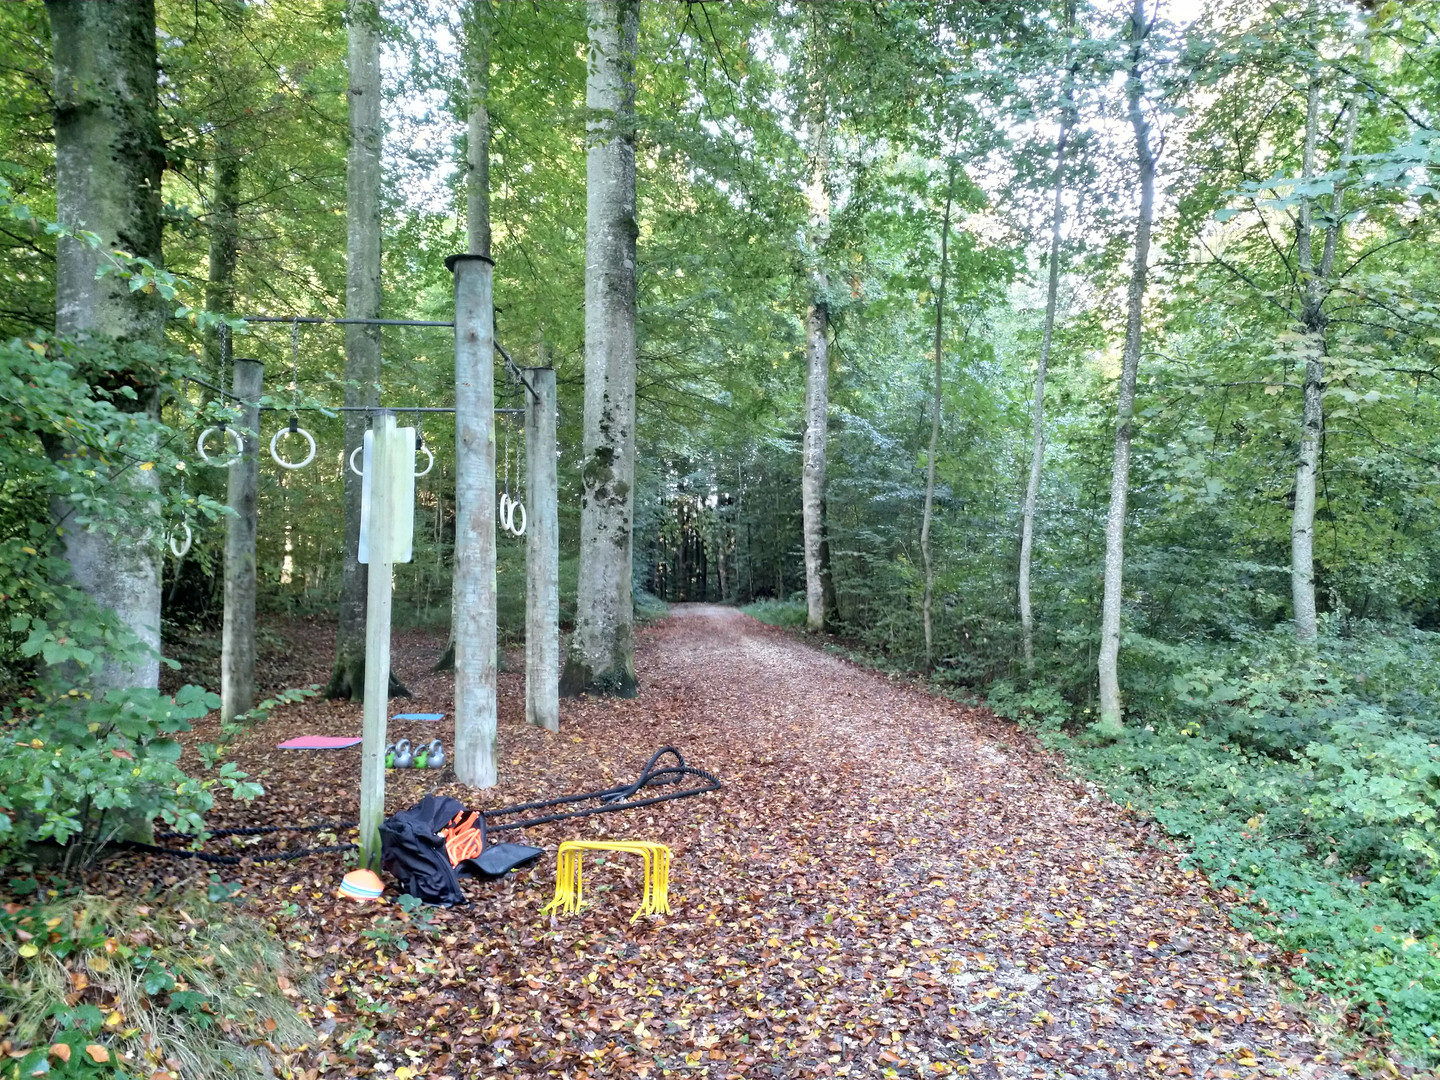 Location Waldtraining